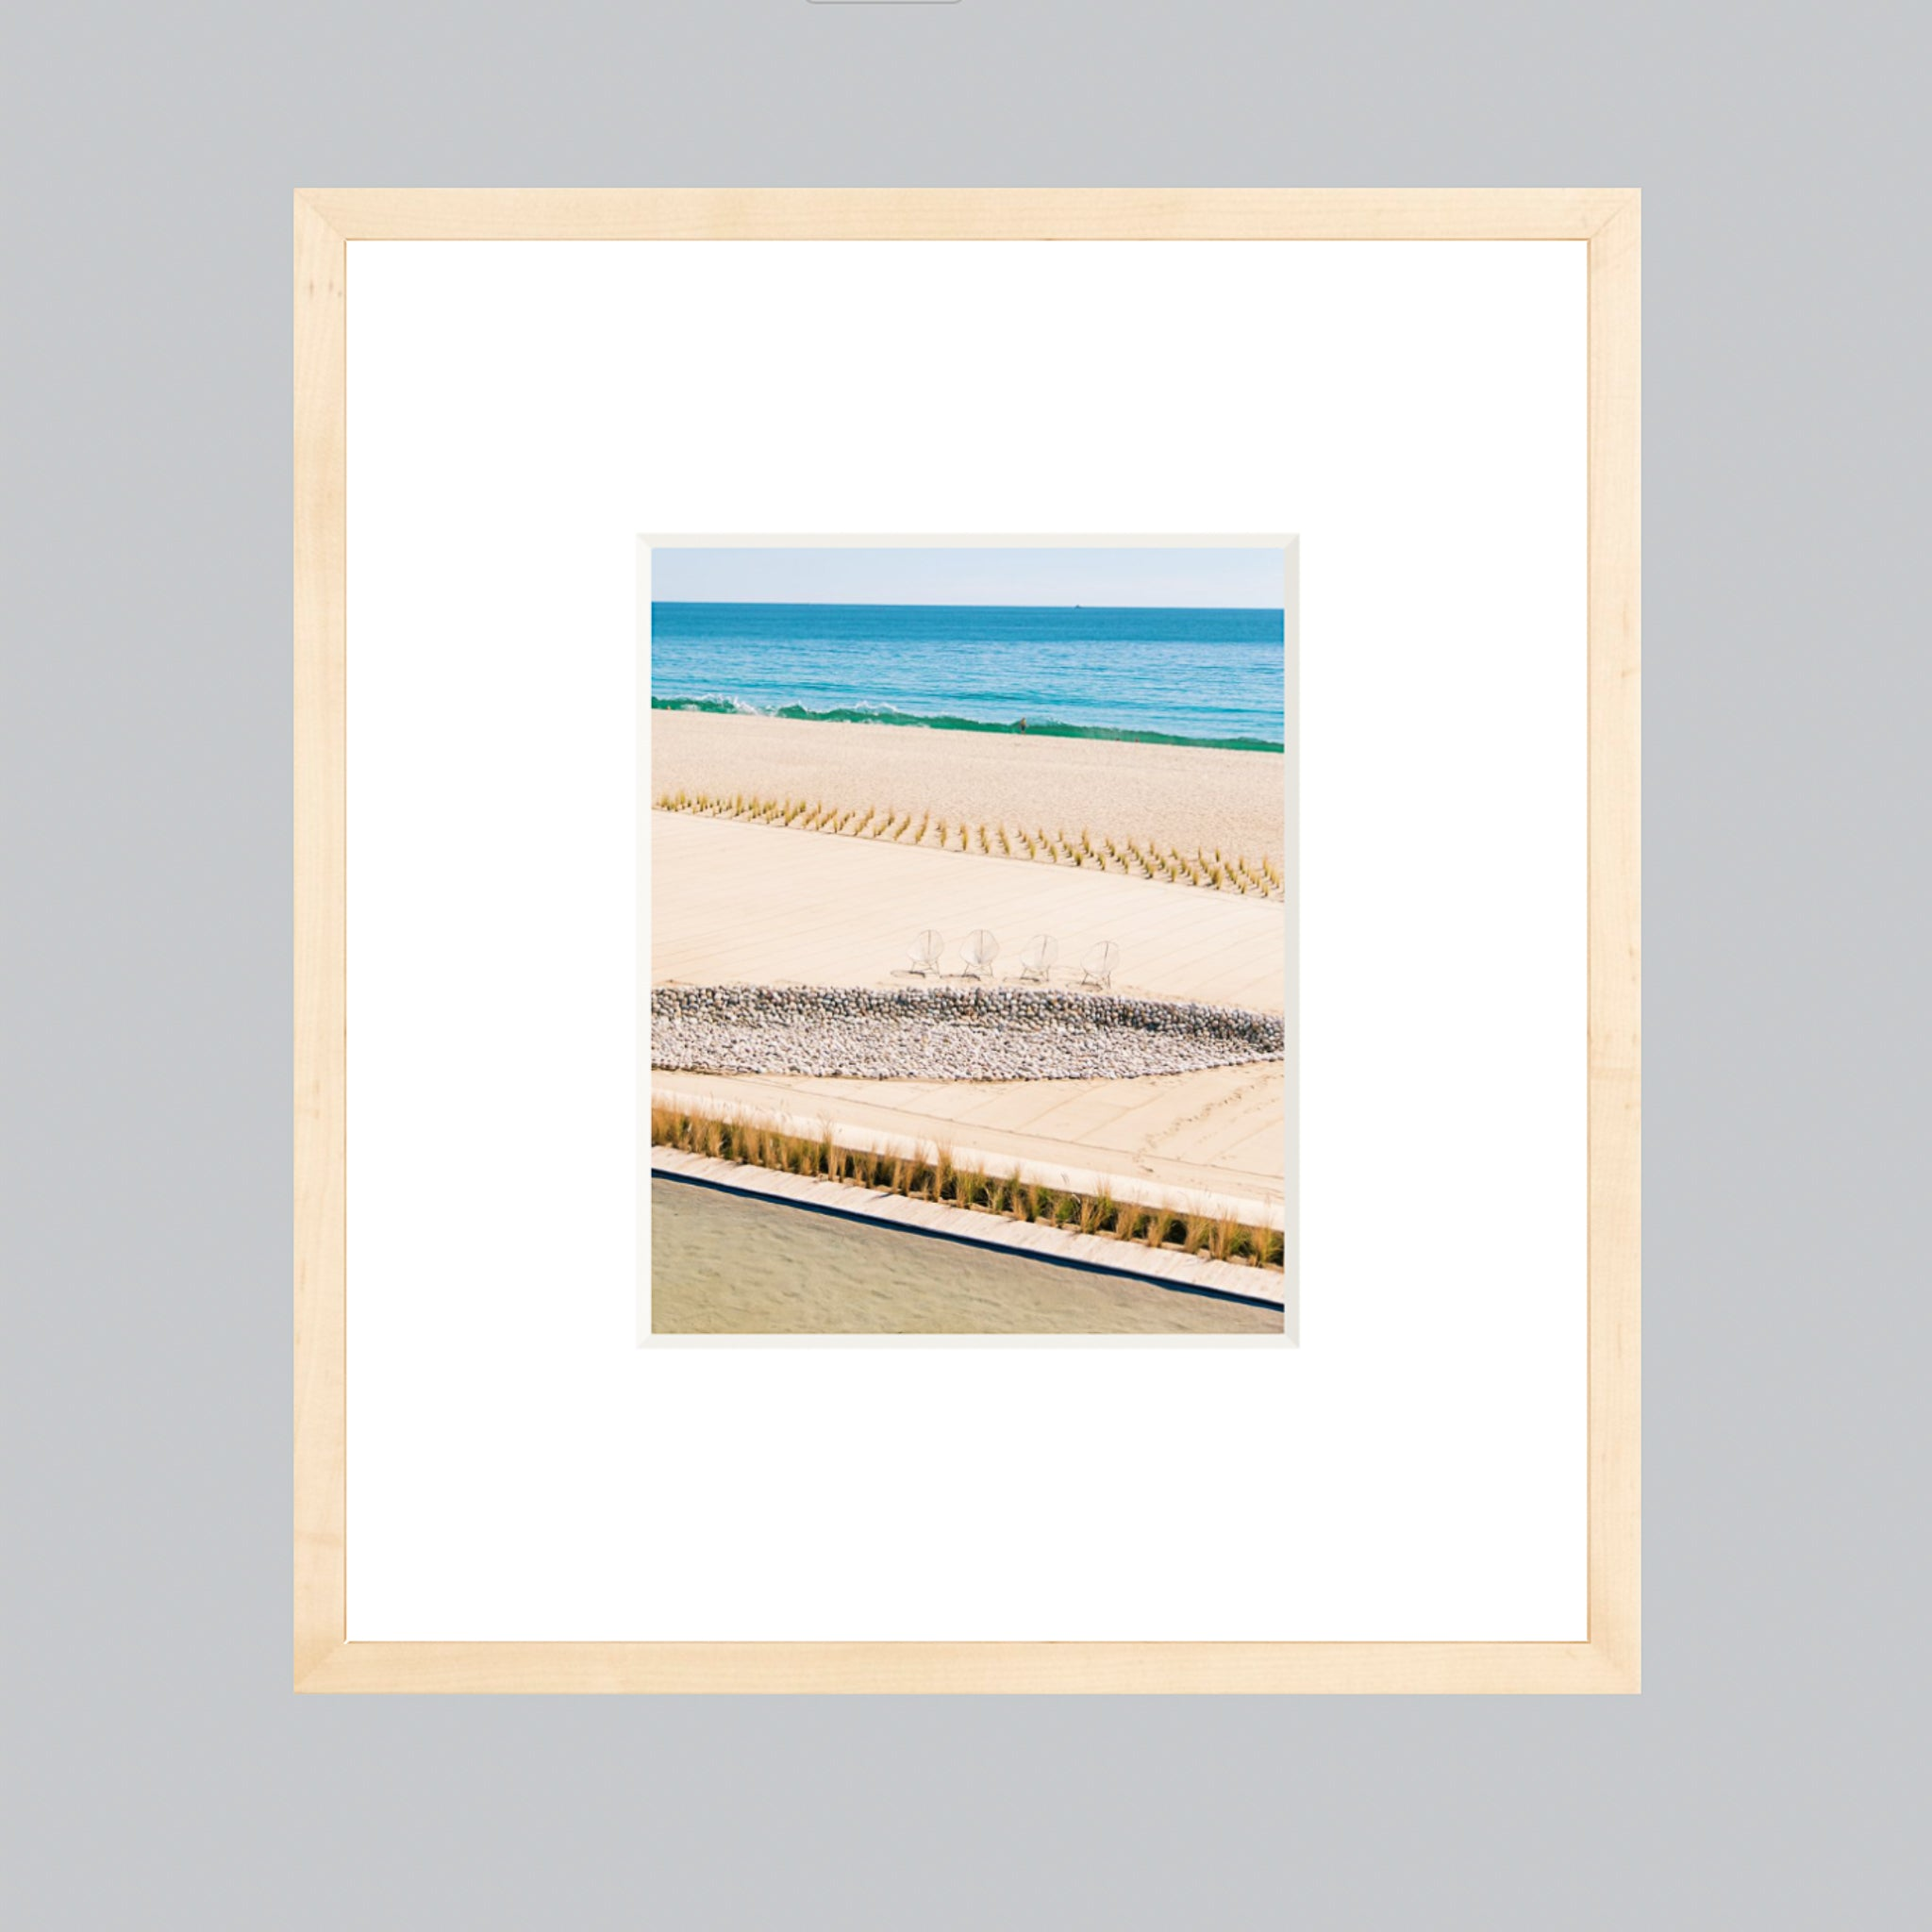 A fine art photo framed in a natural wood frame with an extra-large mat.